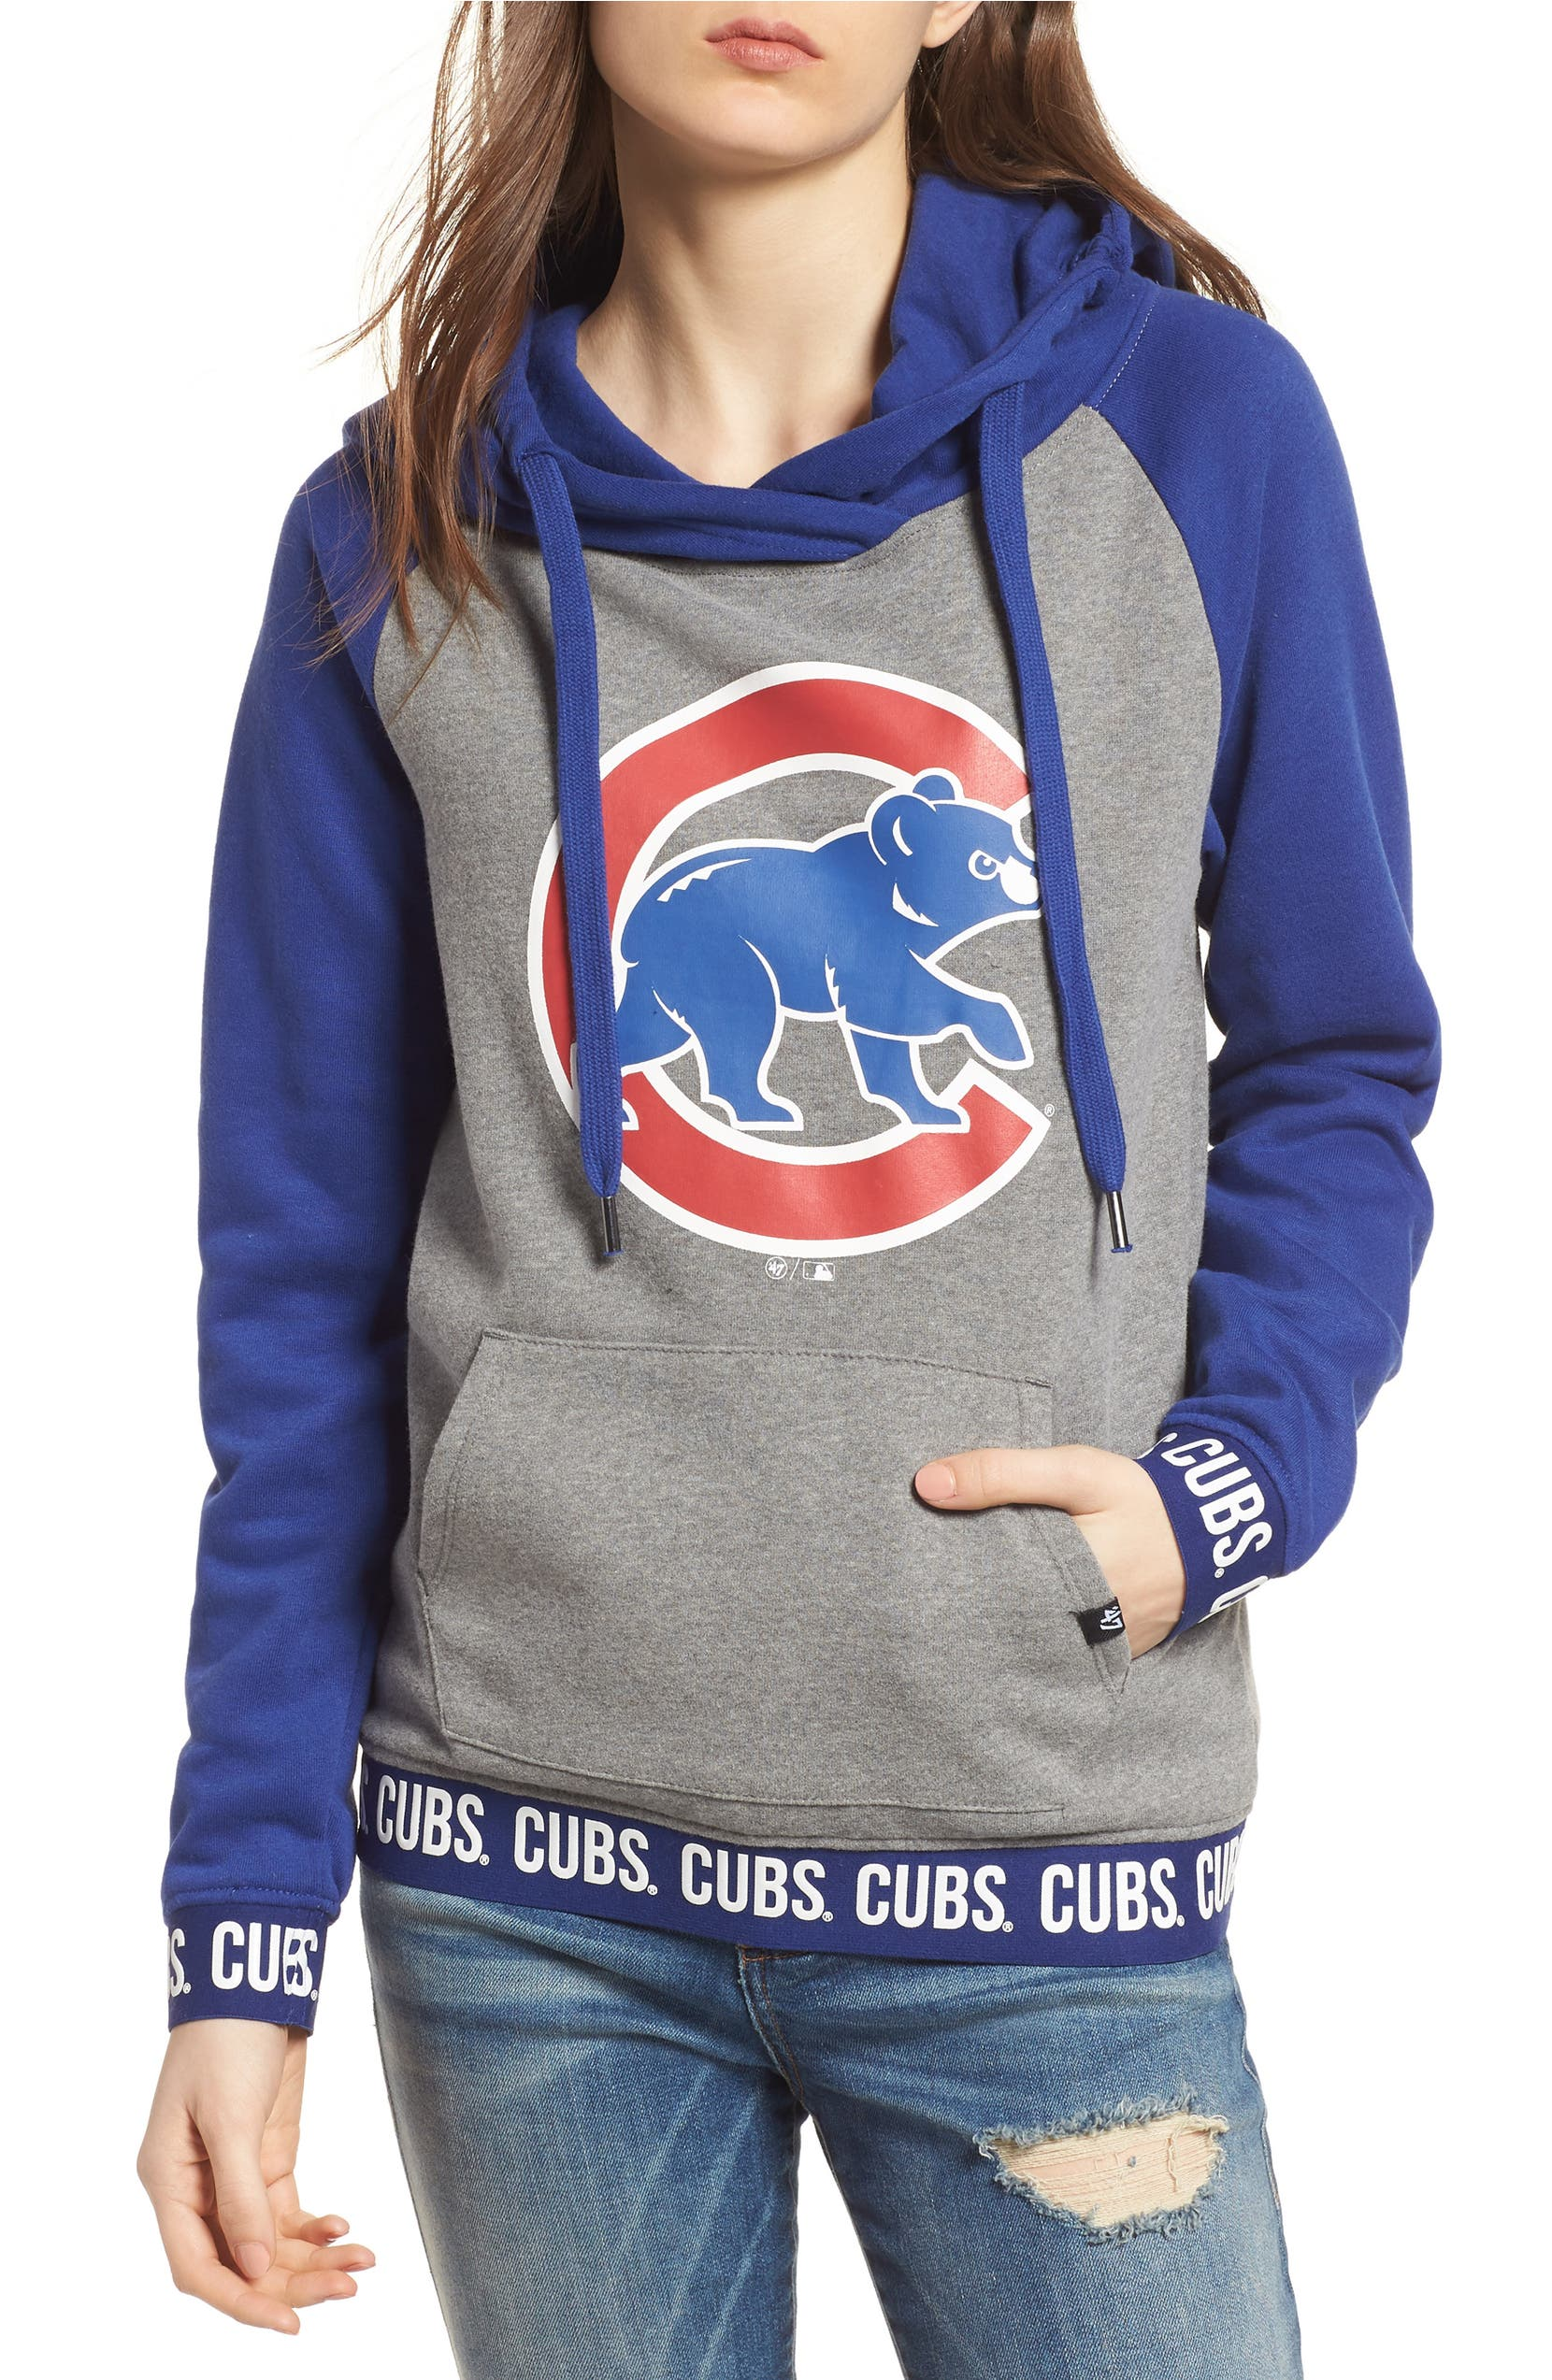 on sale 868a6 fb224 Encore Revolve Chicago Cubs Hoodie